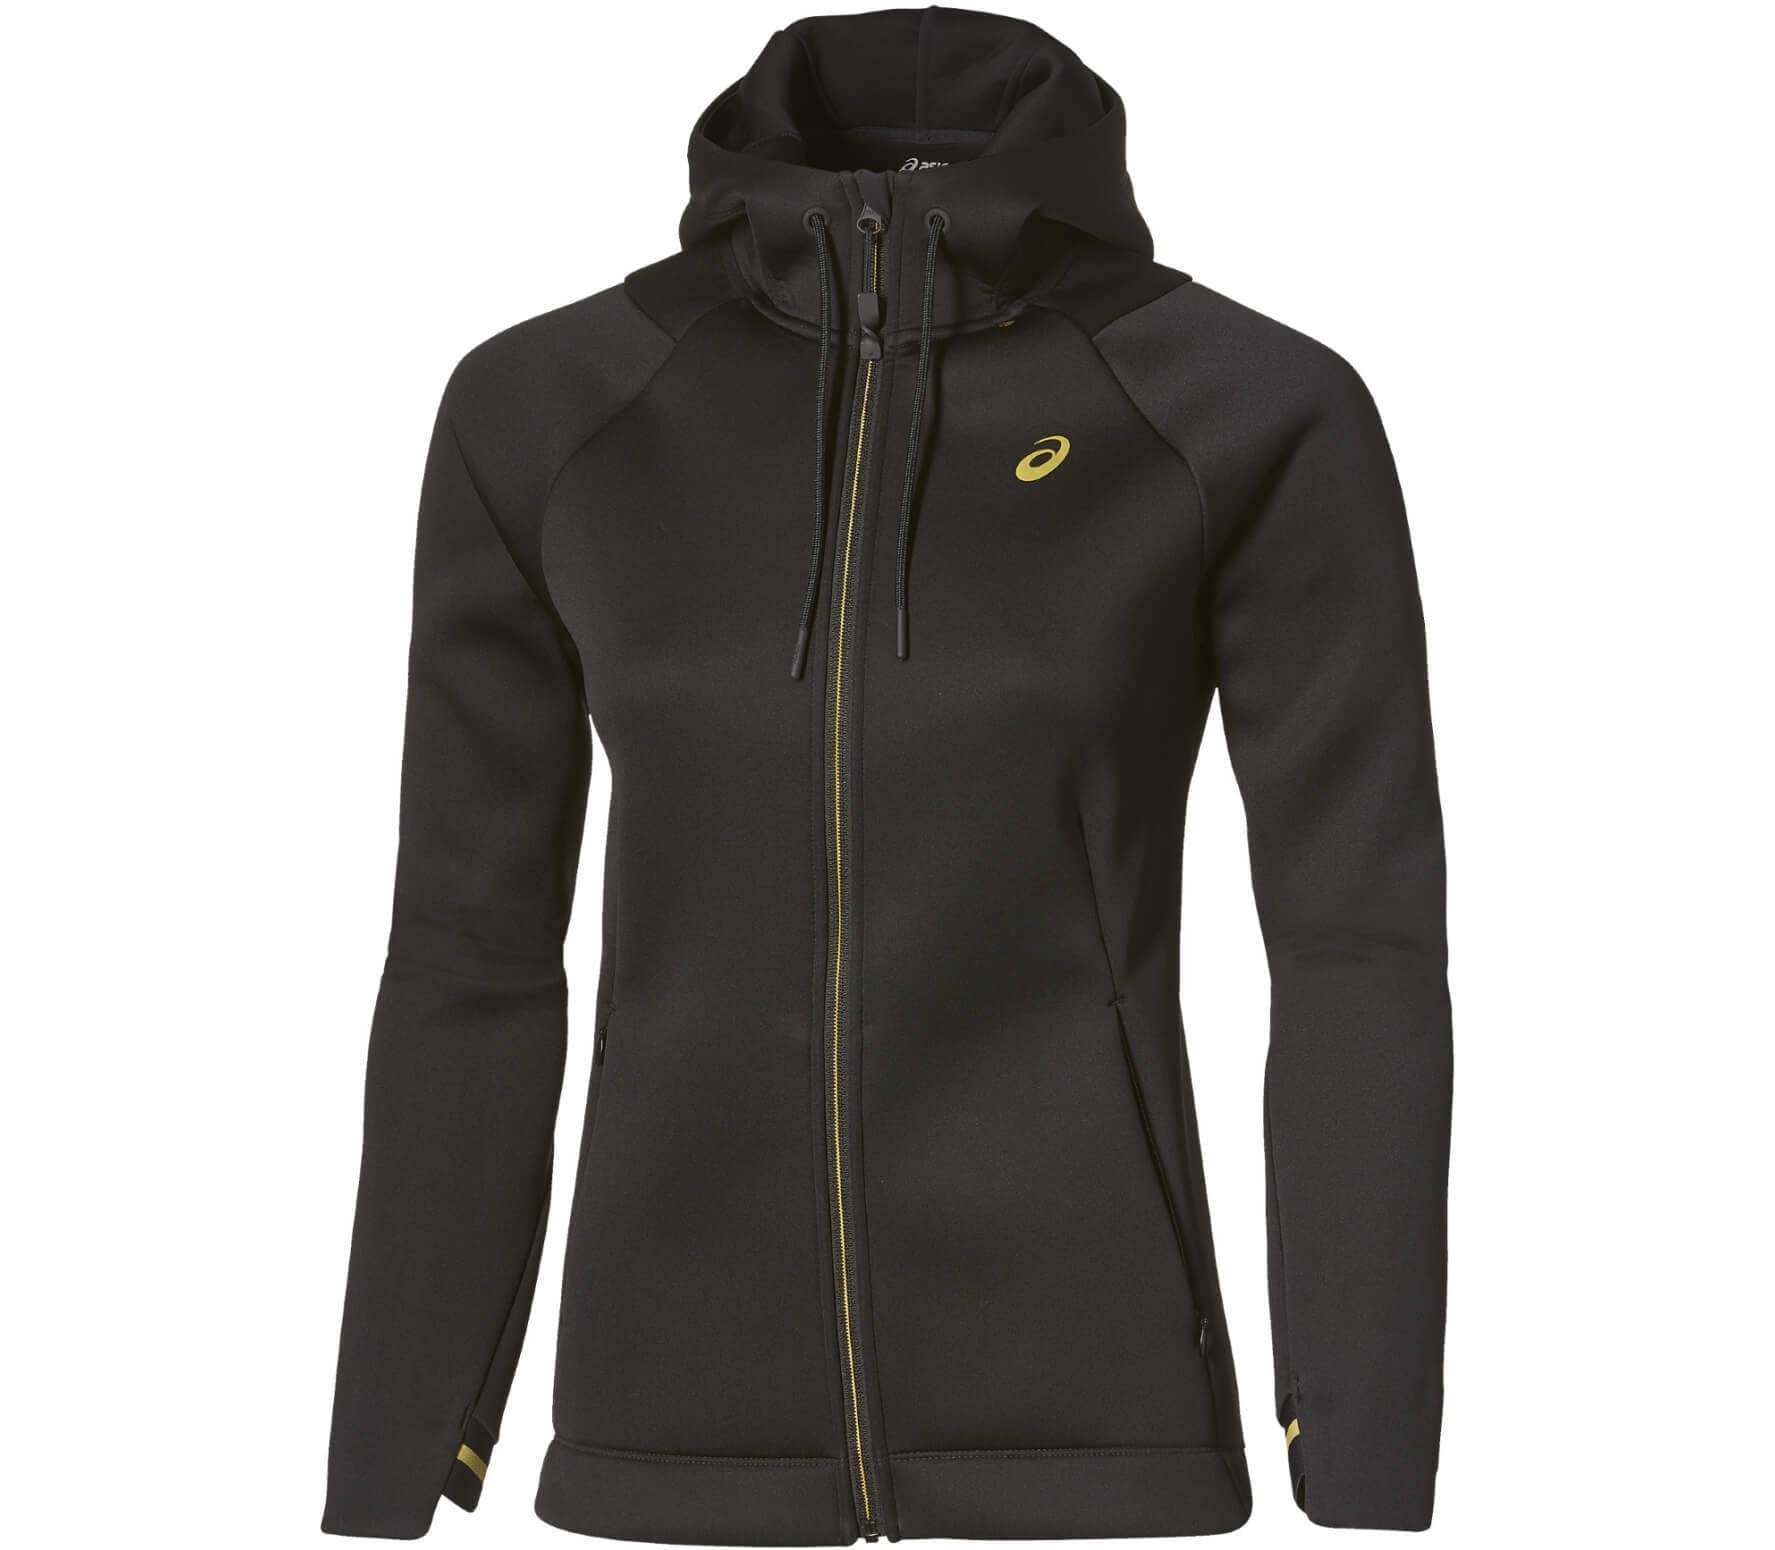 Neoflex Full Zip Damen Trainingshoo schwarz XS